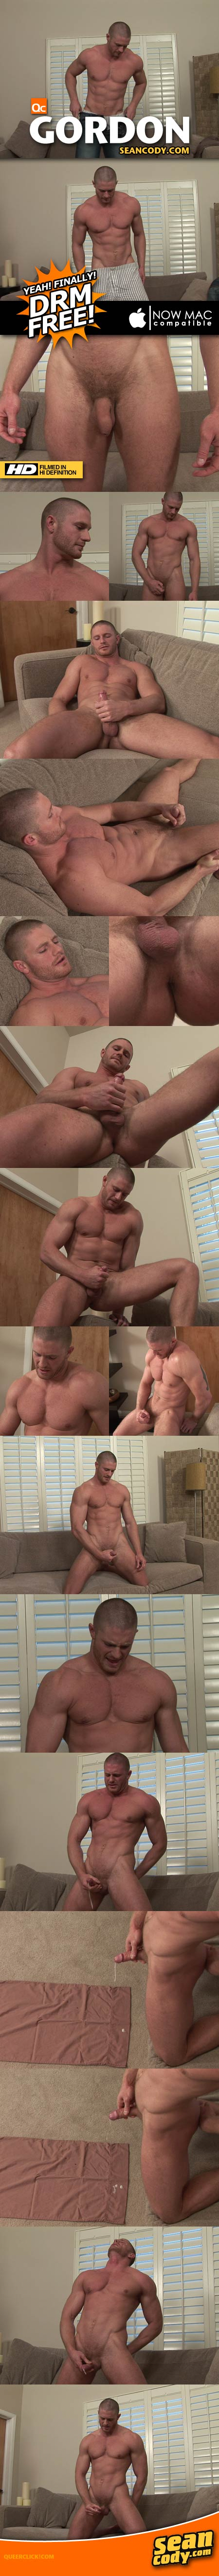 Gordon at SeanCody.com